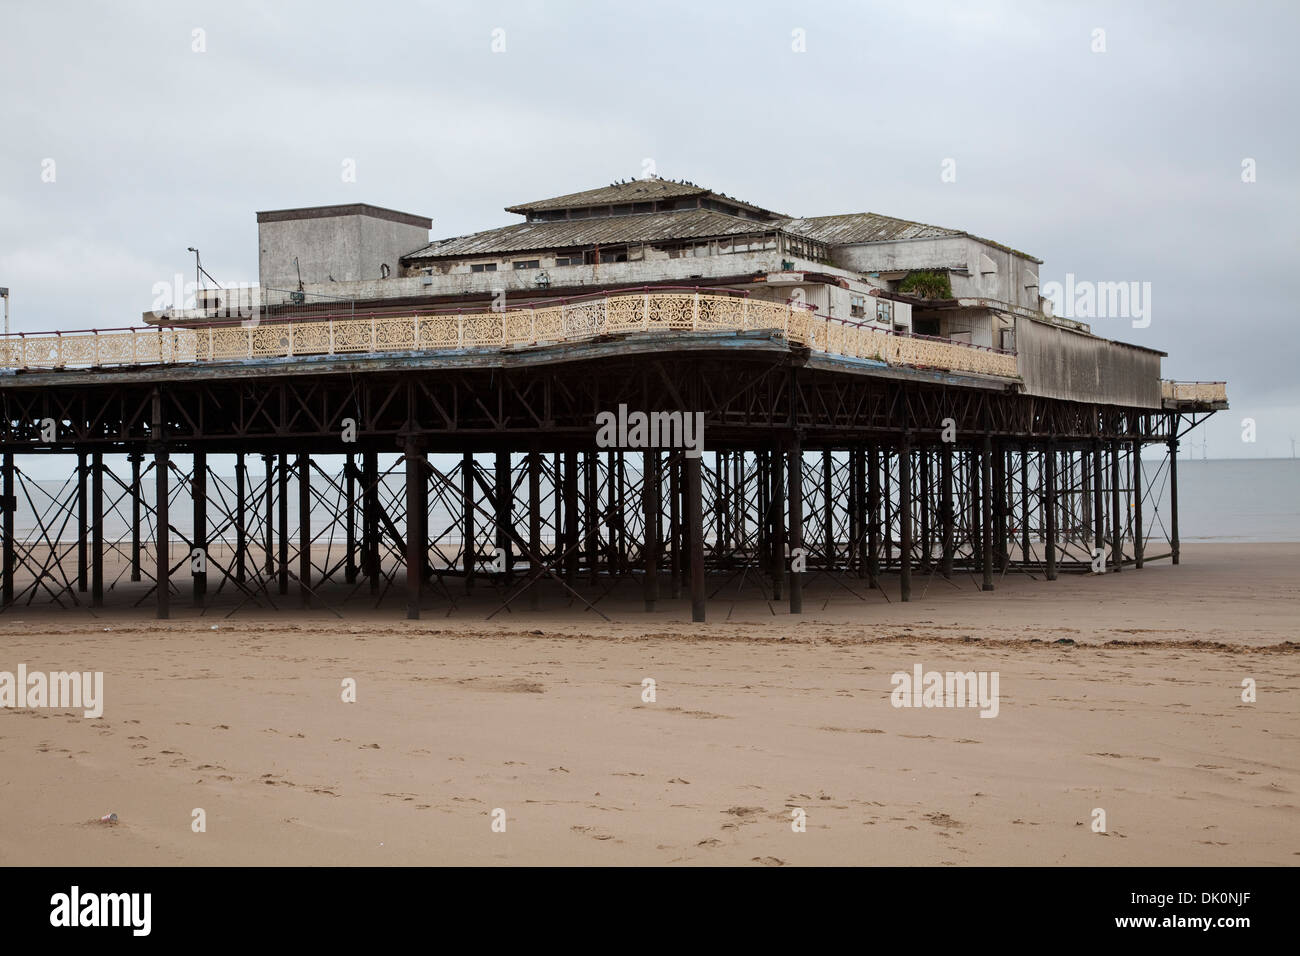 The old derelict Victoria Pier at Colwyn Bay on the North Wales coast opened in 1900 and closed to the public July 2008 - Stock Image